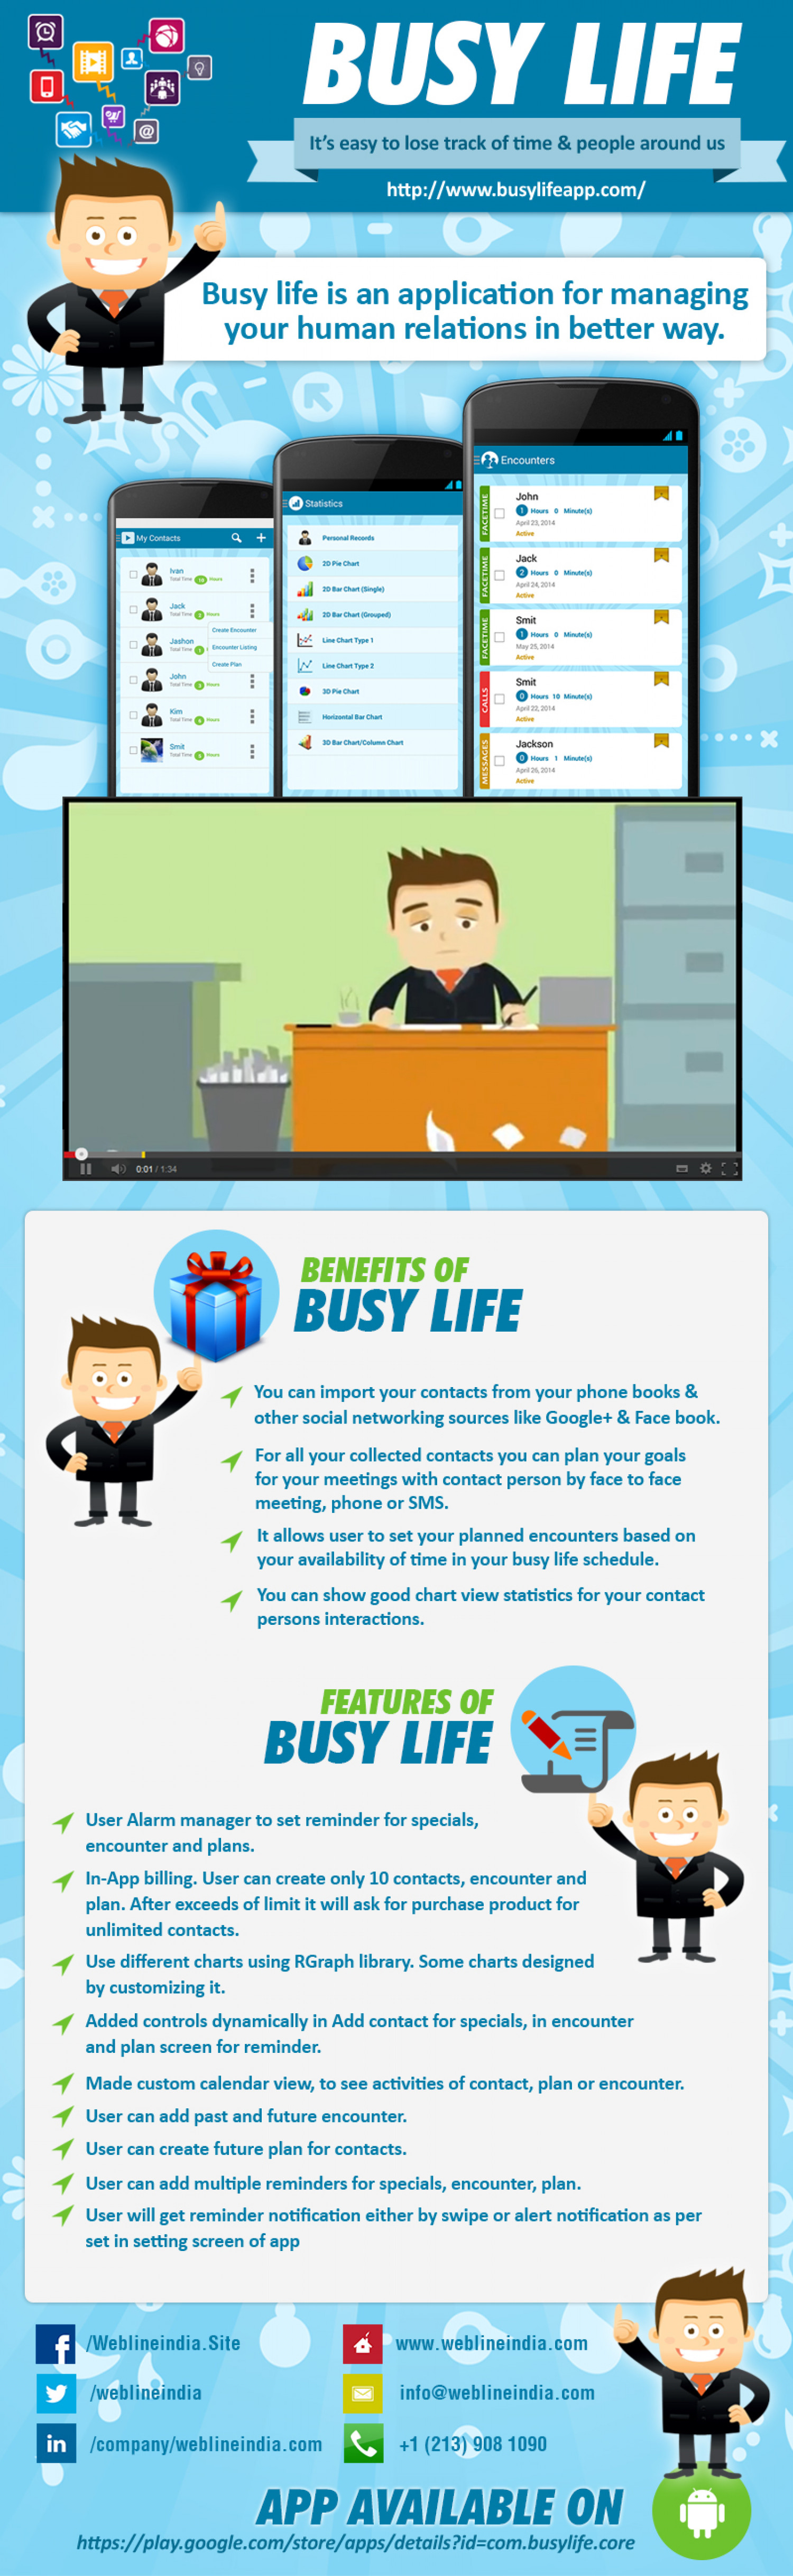 Busy Life App for Android Devices Infographic